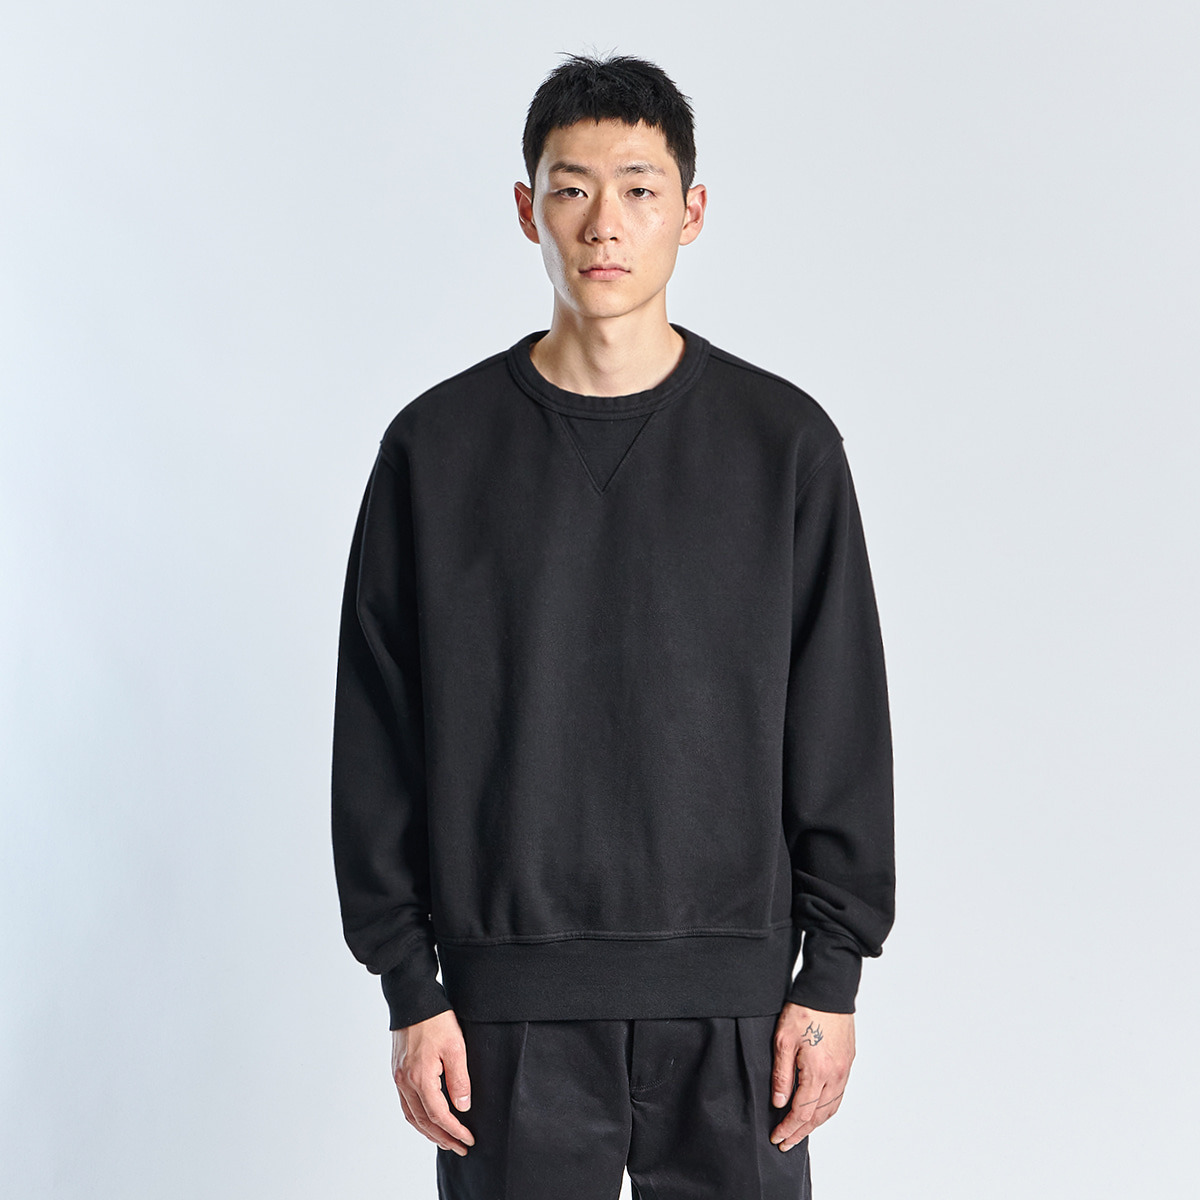 SWEAT SHIRT (Black)